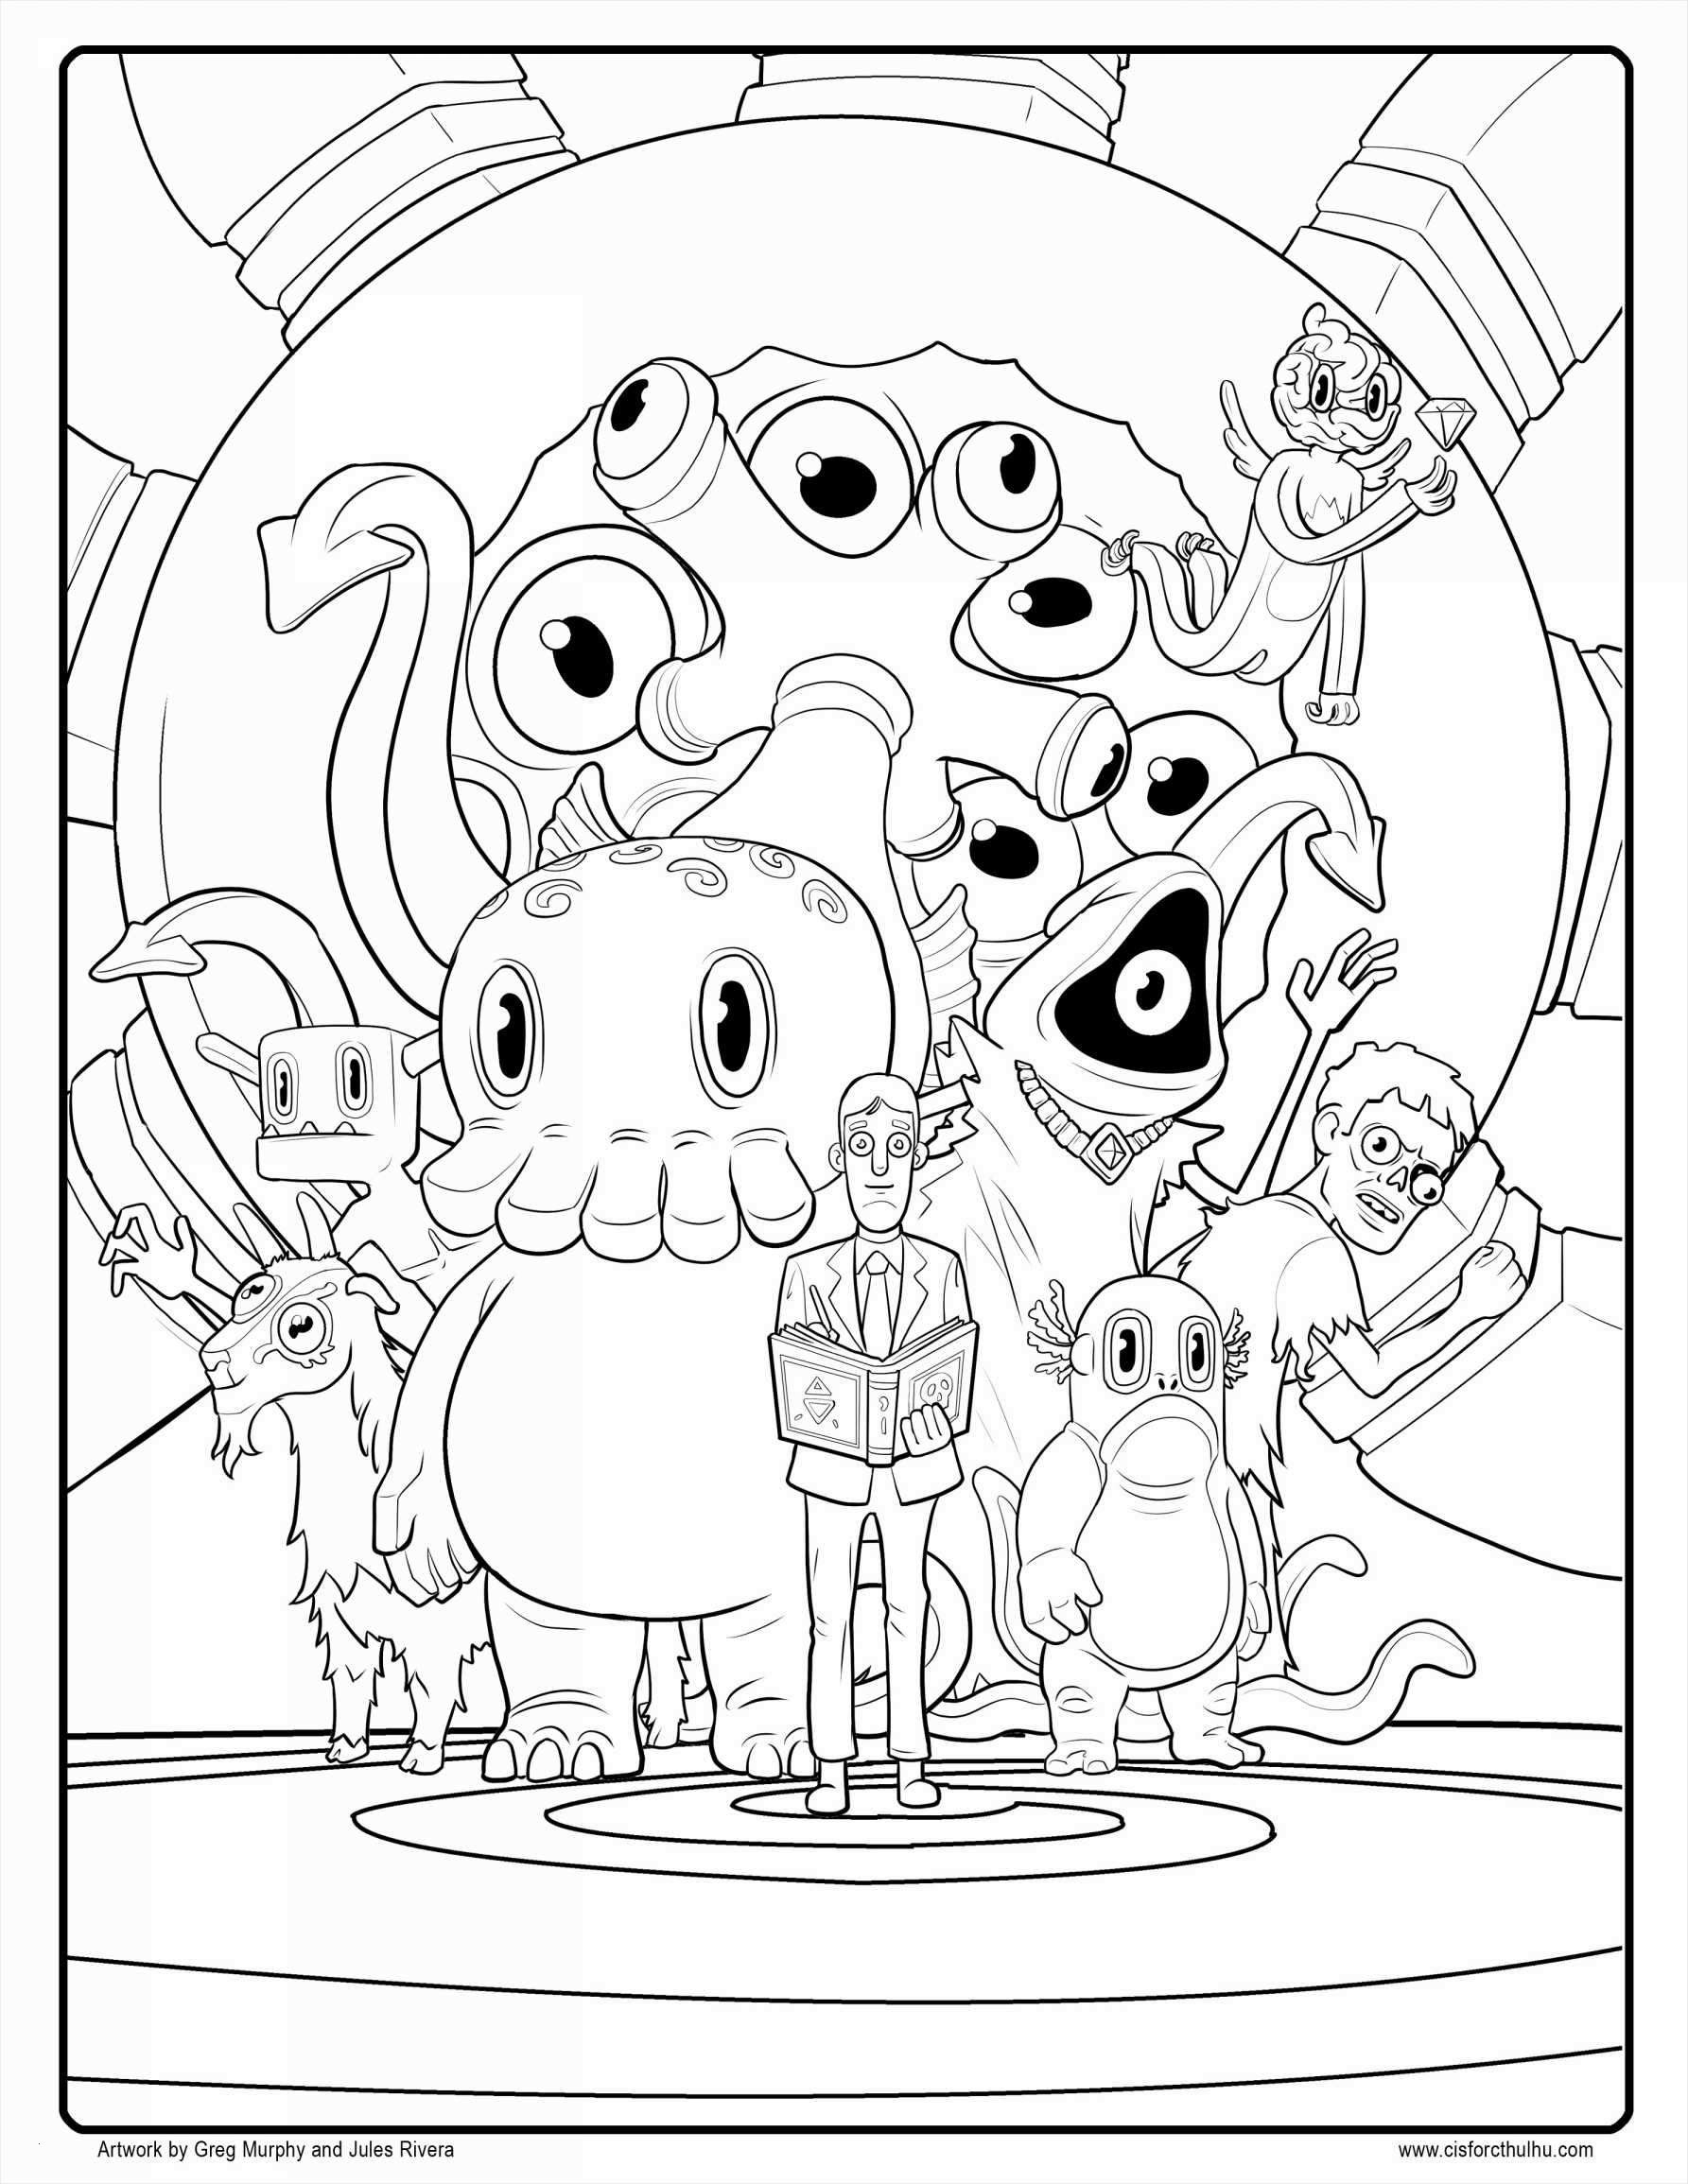 snoopy christmas coloring pages Collection-Snoopy Malvorlagen Einzigartig Christmas Coloring Page Peanuts Elegant Snoopy Malvorlagen 2-a